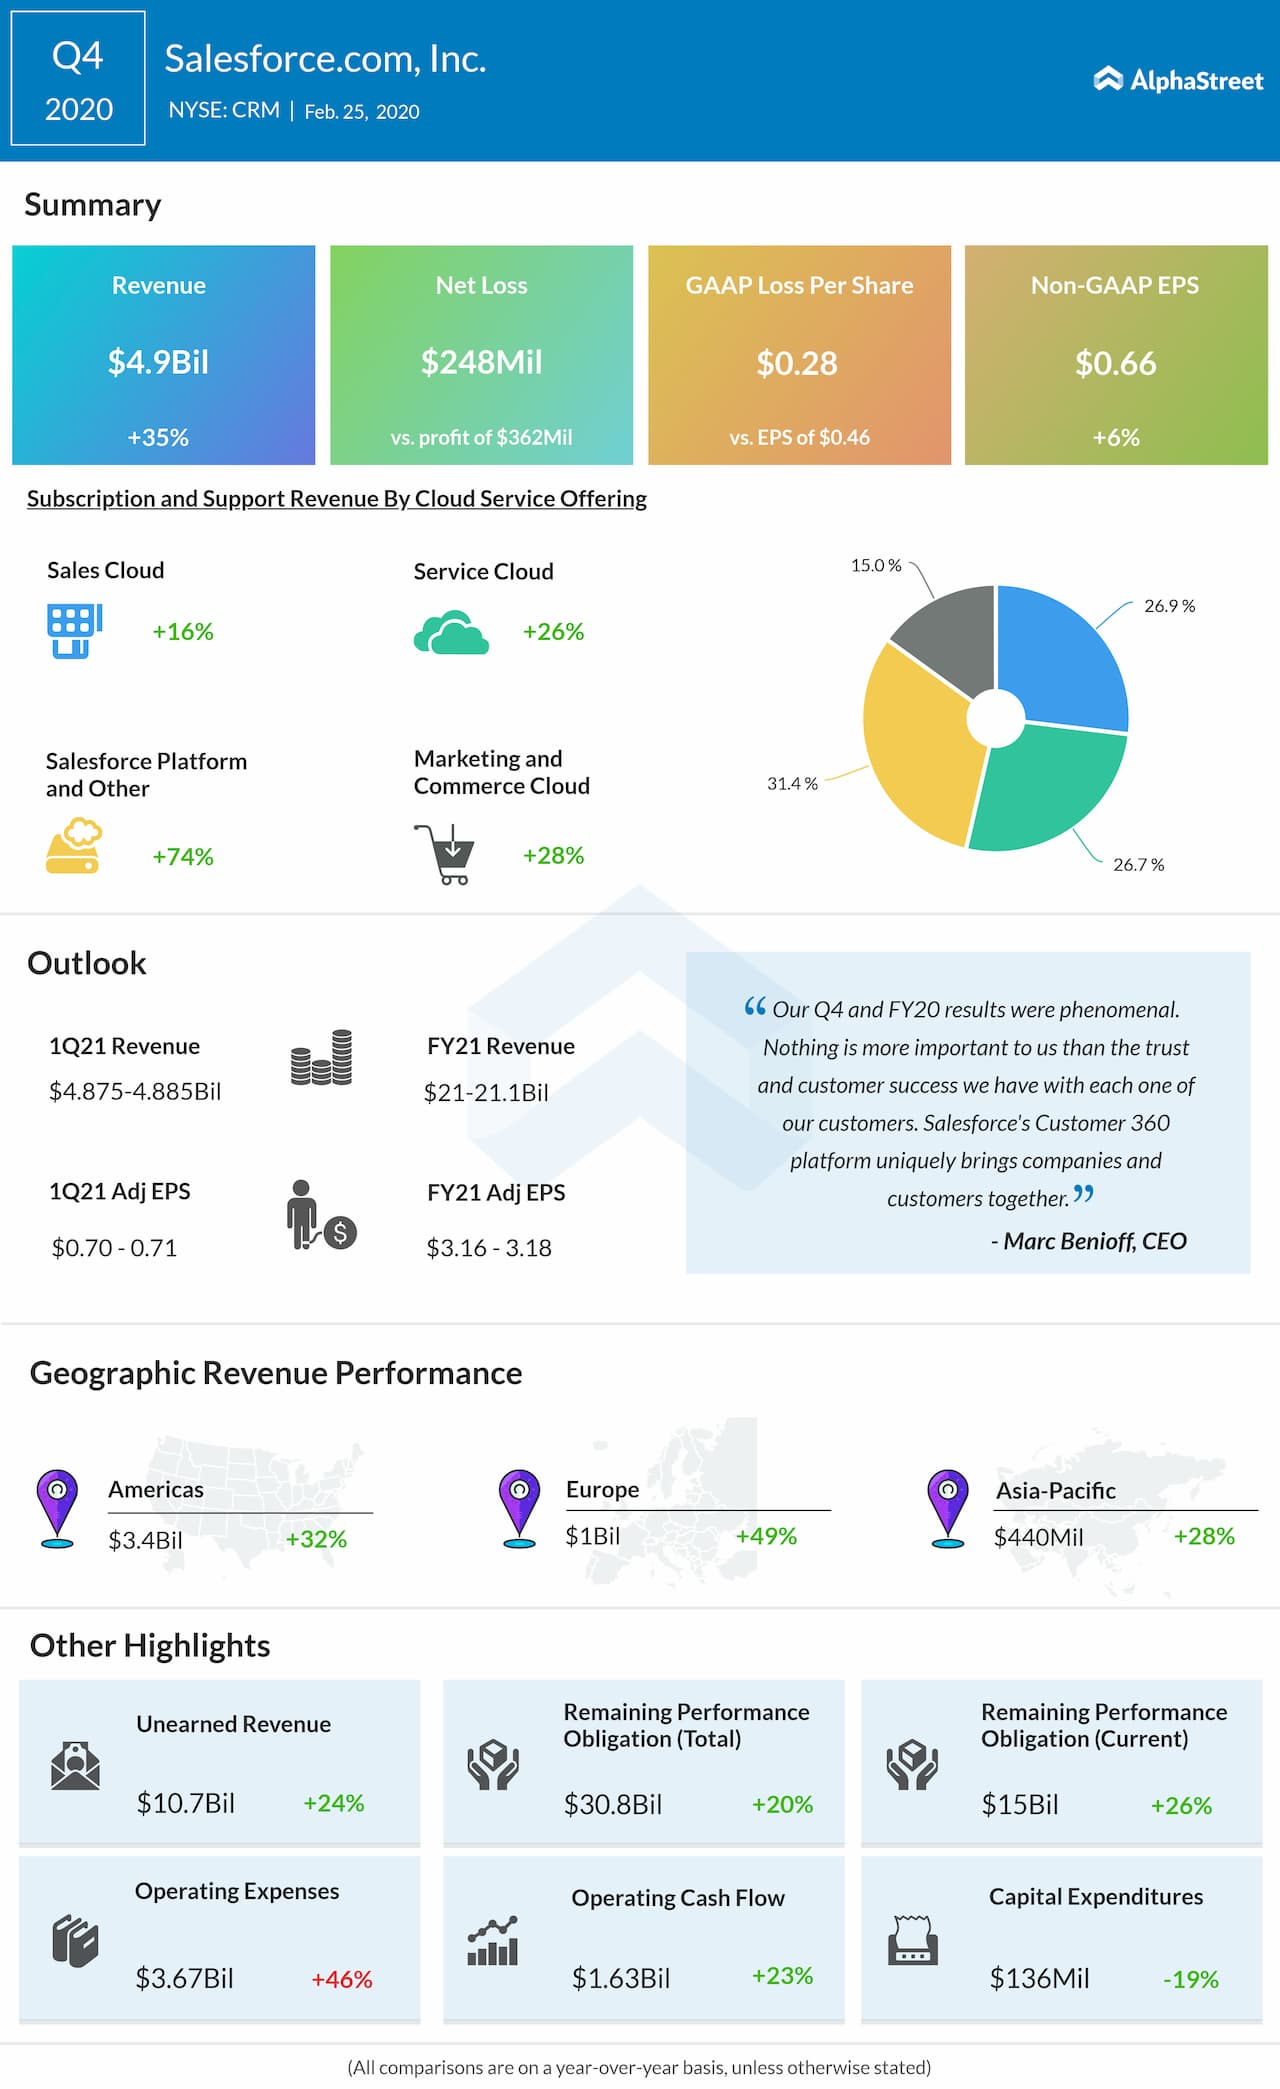 Salesforce.com (CRM) Q4 2020 earnings review